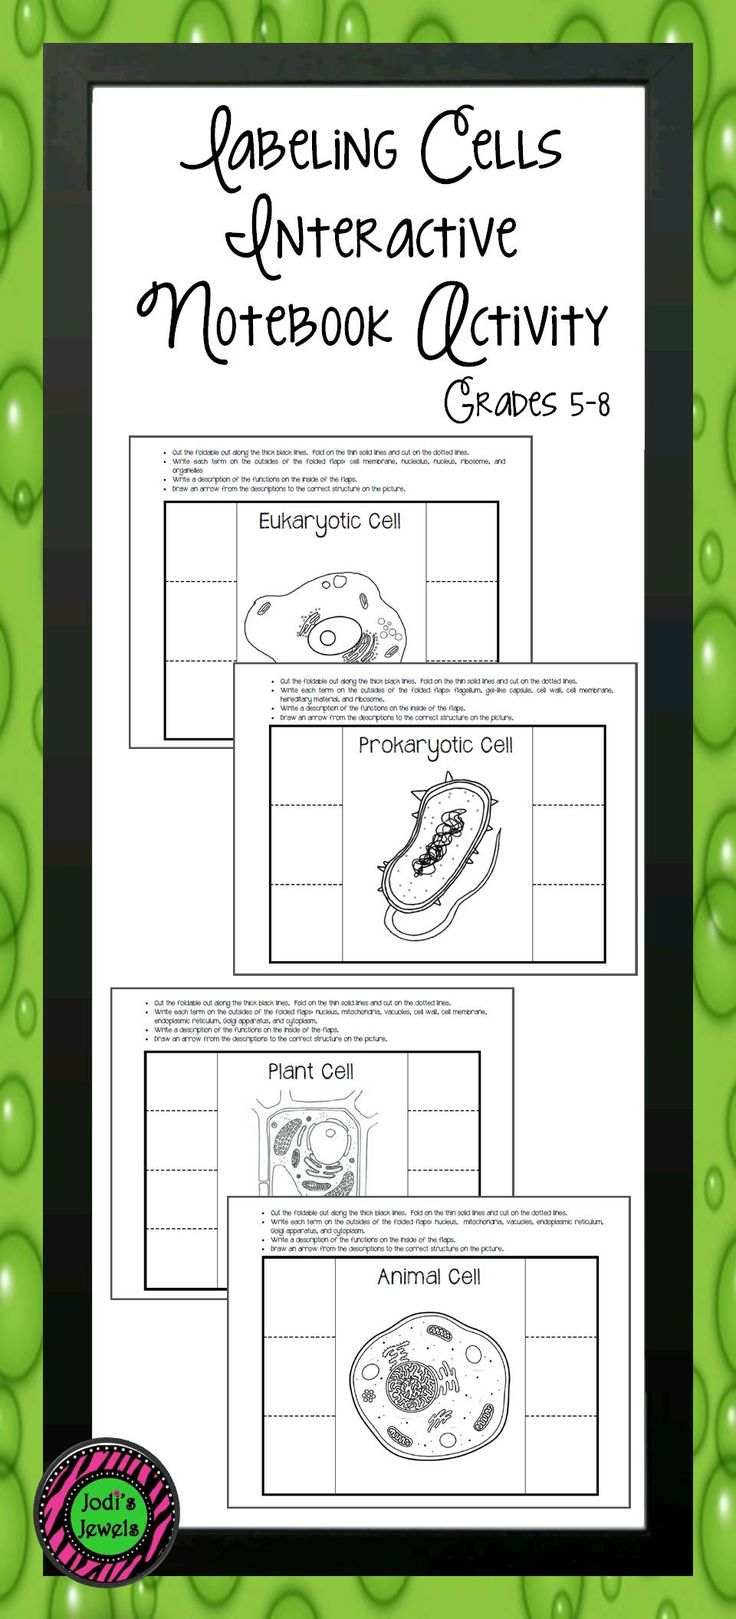 Students will create 4 different interactive notebook diagrams of the following cells: animal cell, plant cell, eukaryotic cell, and prokaryotic cell. Diagrams can be colored according to the teacher's directions. Diagrams could also be used in a lab setting or as a lab quiz. Visit Jodi's Jewels today!